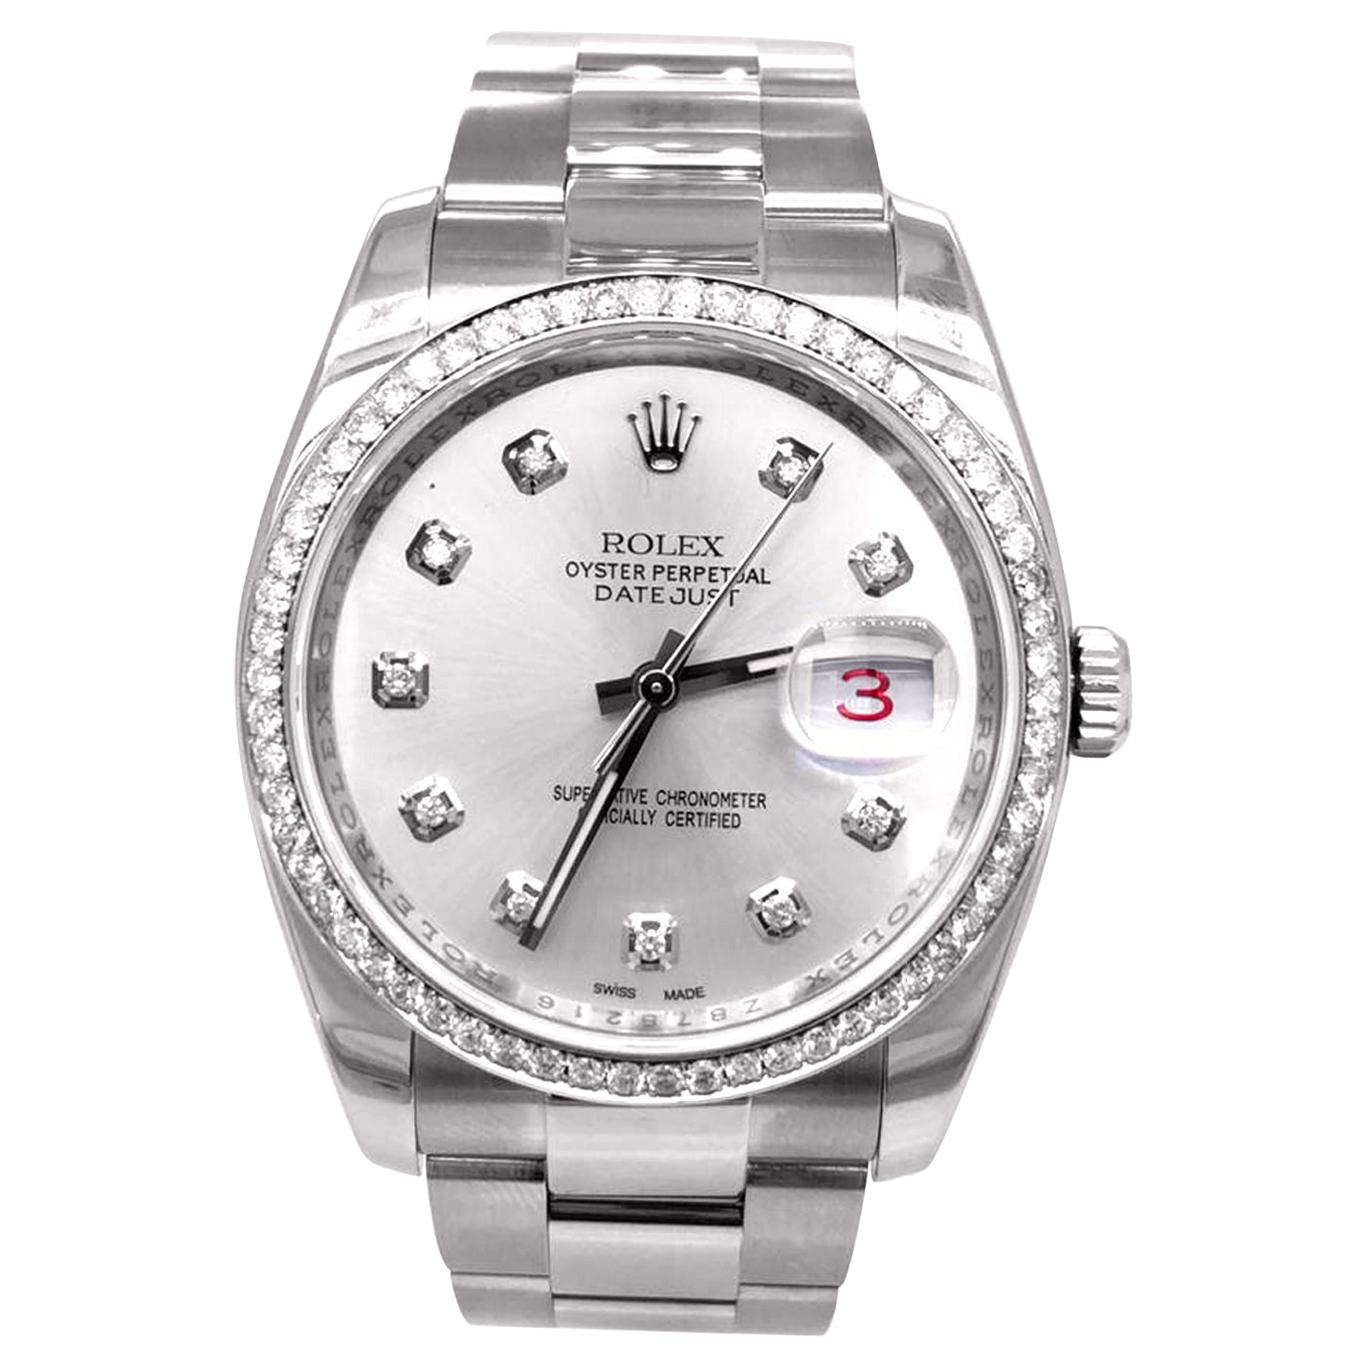 Rolex Datejust Ouster Diamond Bezel with Silver Diamond Dial and Bezel 116200